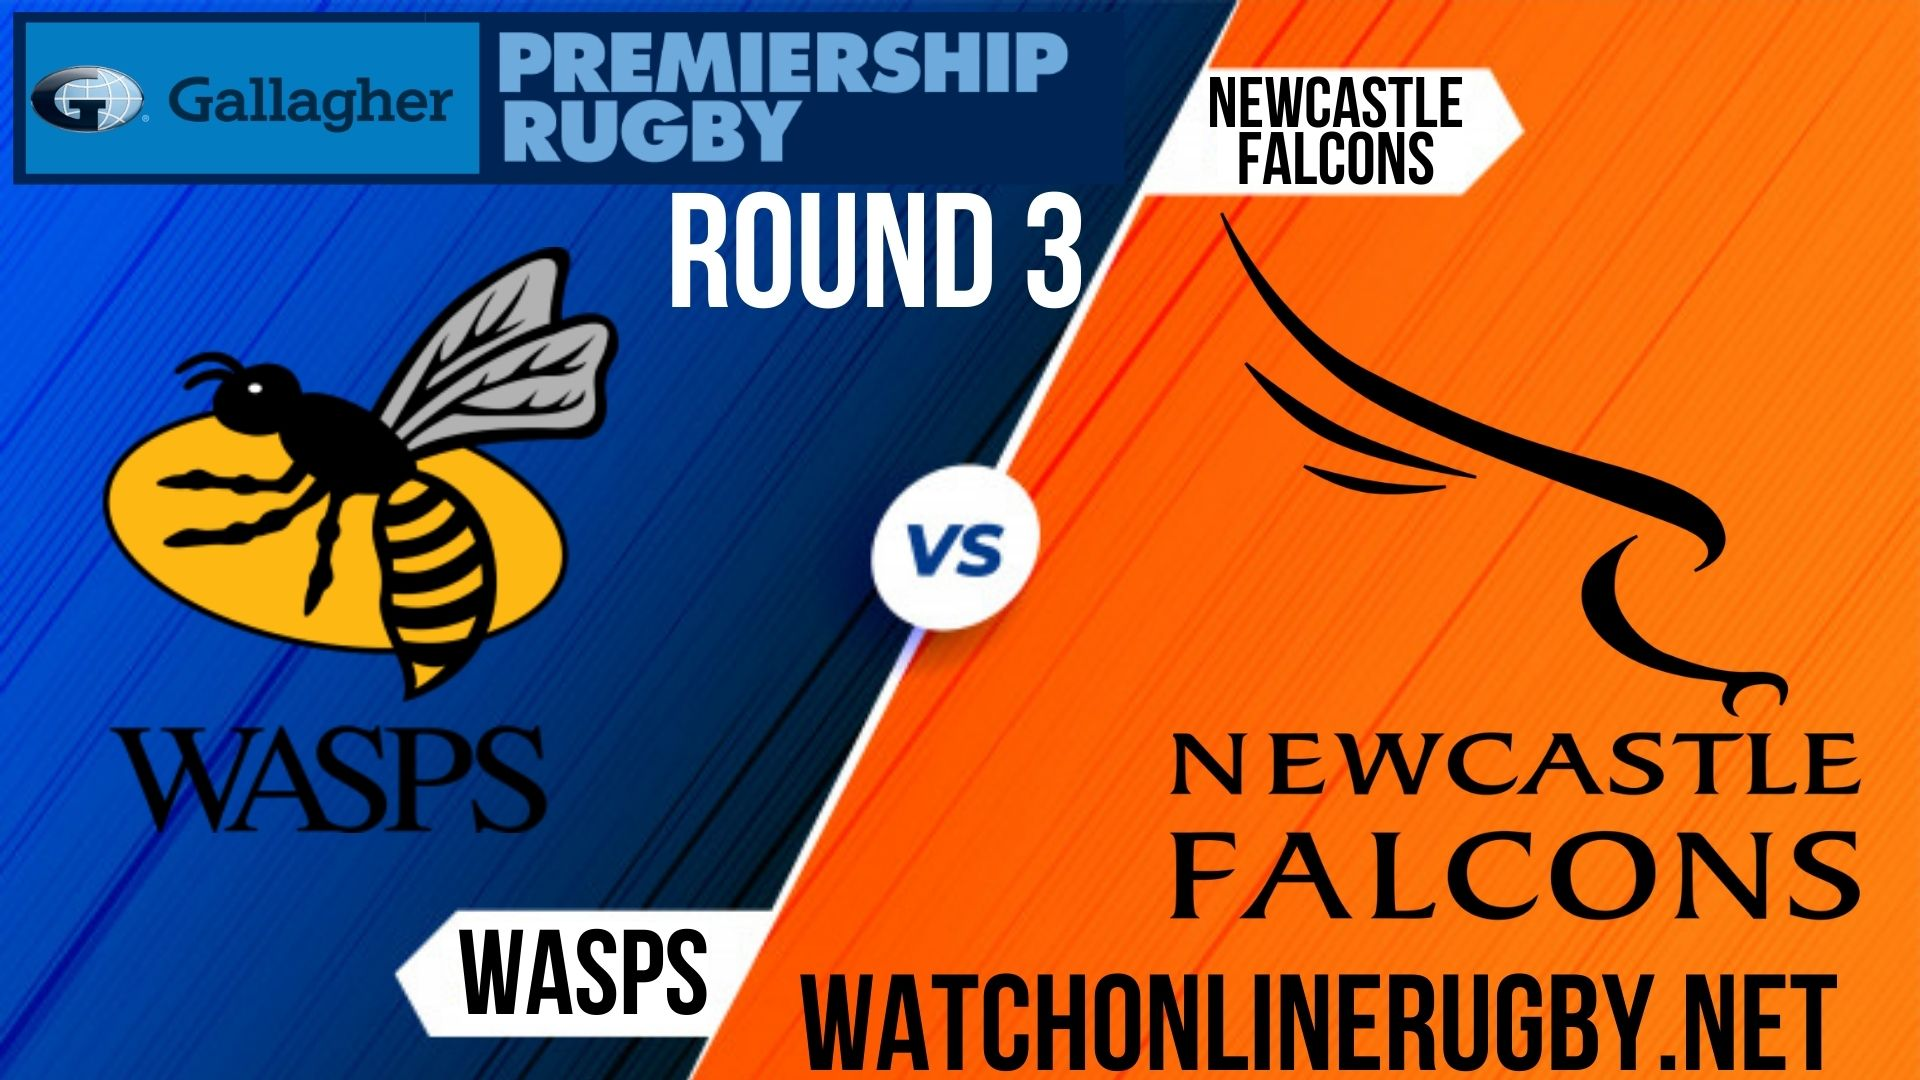 watch-wasps-vs-newcastle-falcons-live